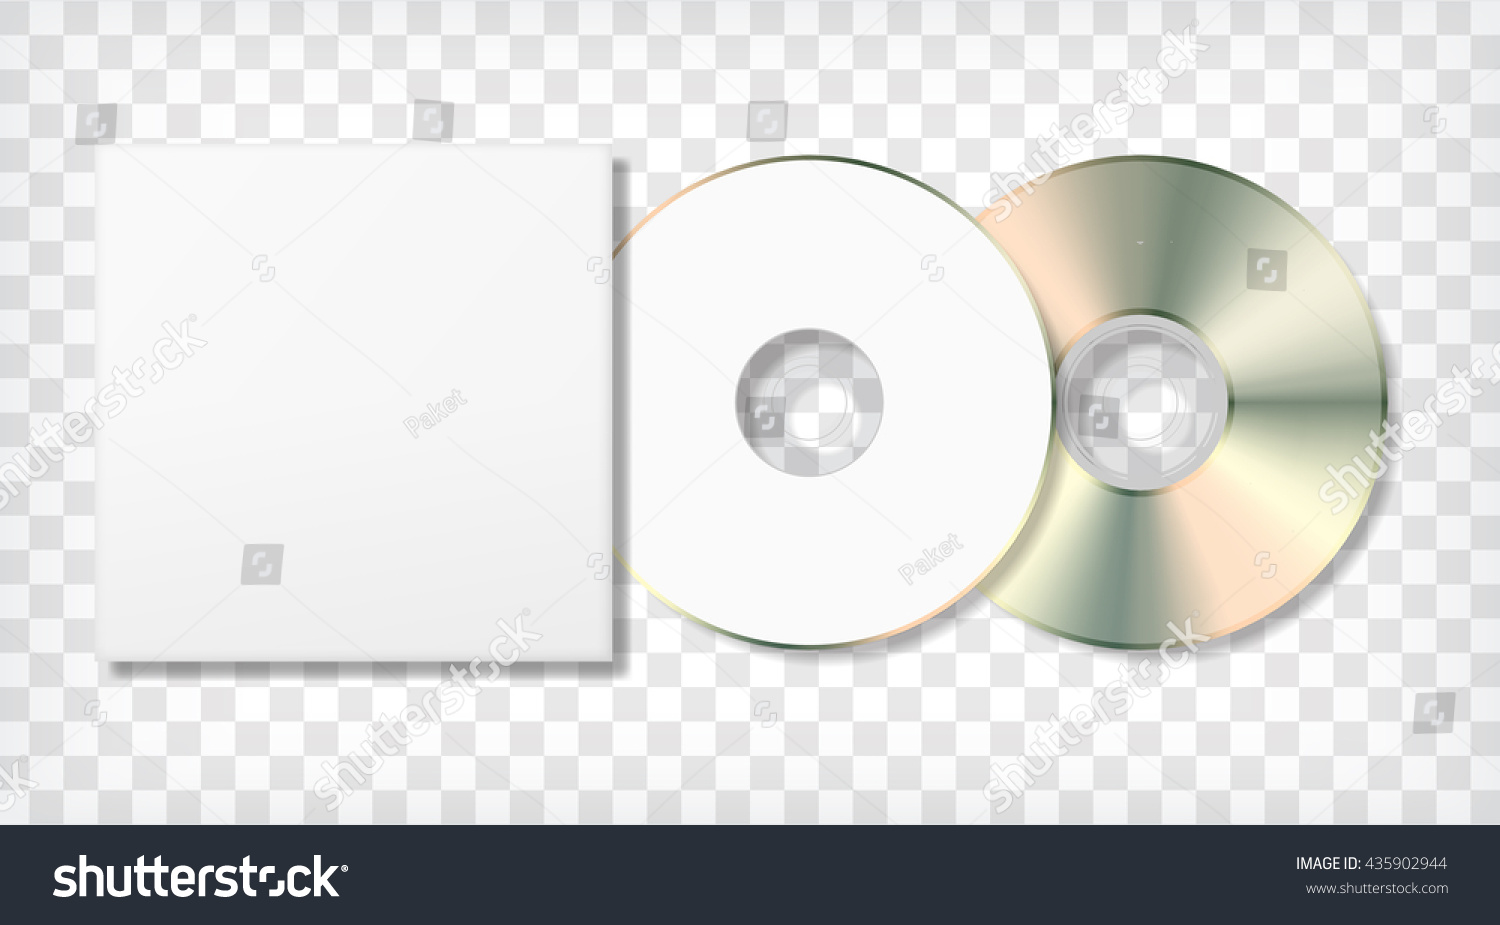 blank cd disk case template photo stock vector royalty free